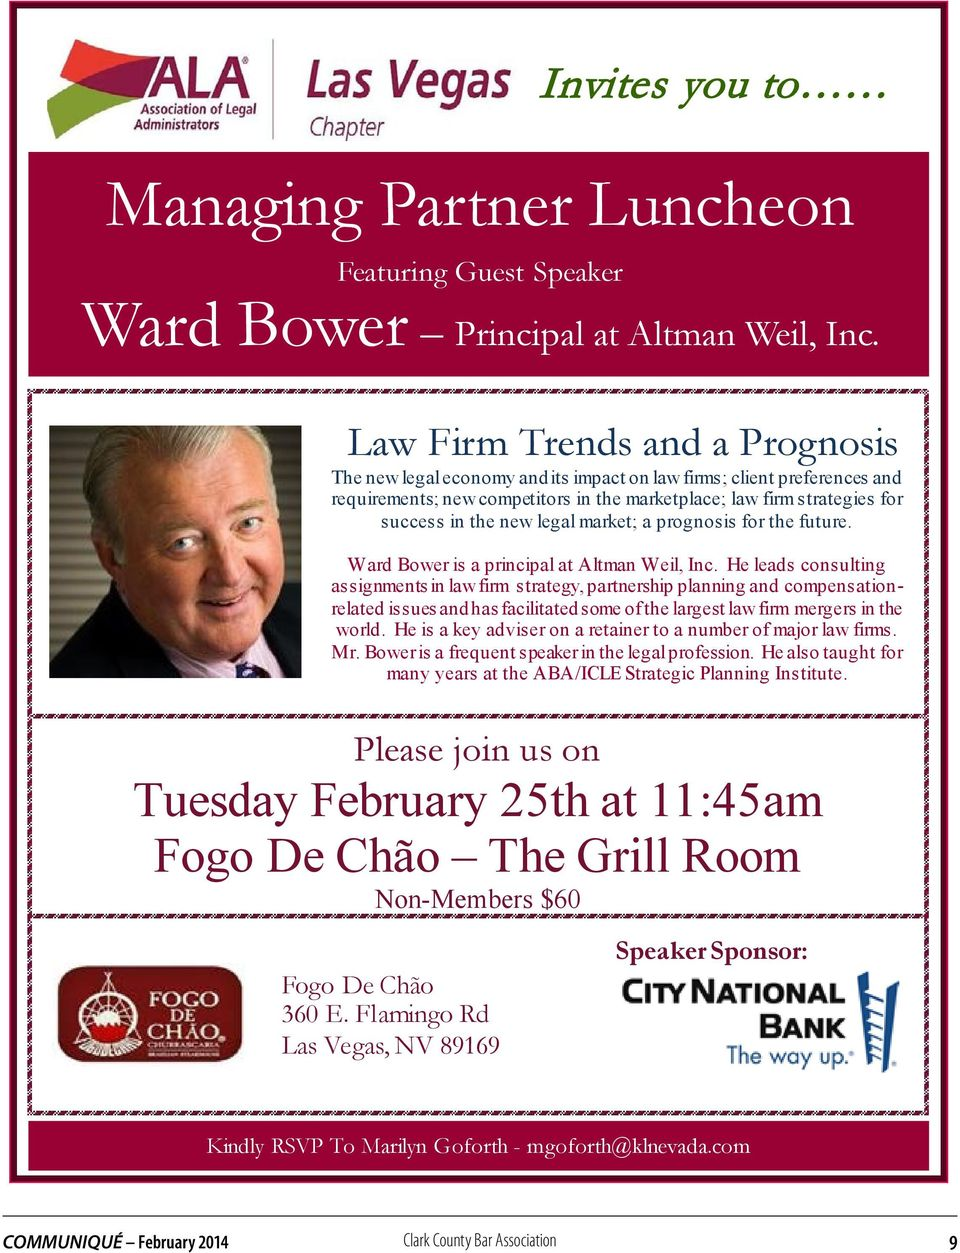 legal market; a prognosis for the future. Ward Bower is a principal at Altman Weil, Inc.